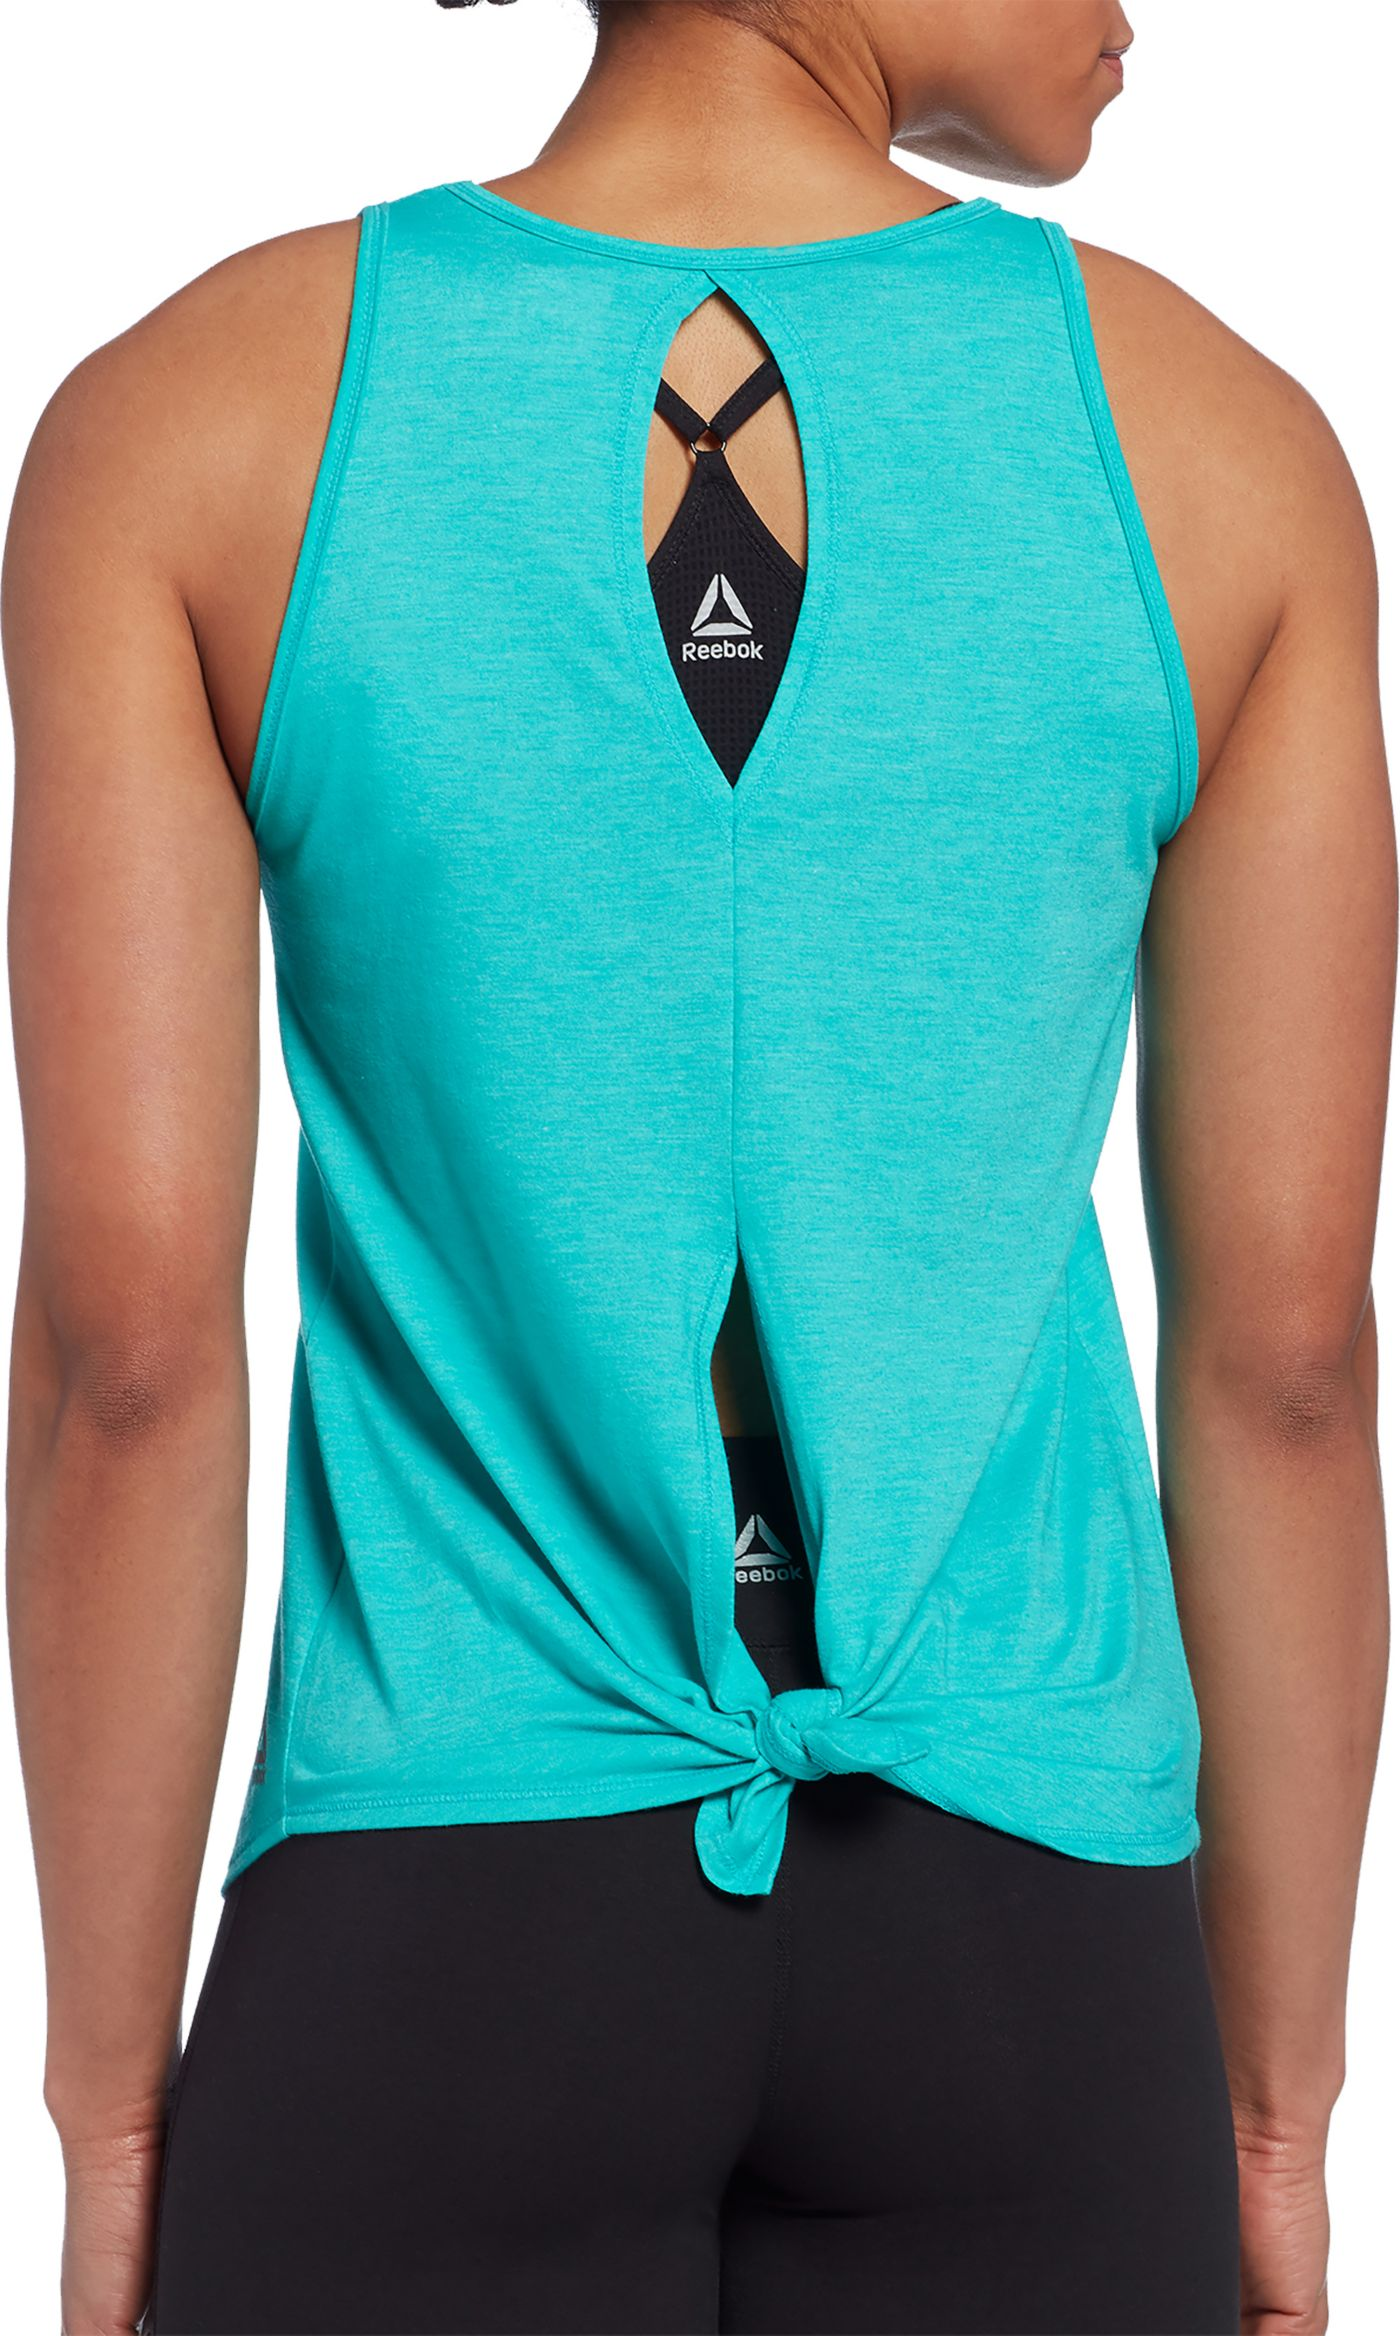 Reebok Women's Cotton Tie Back Tank Top